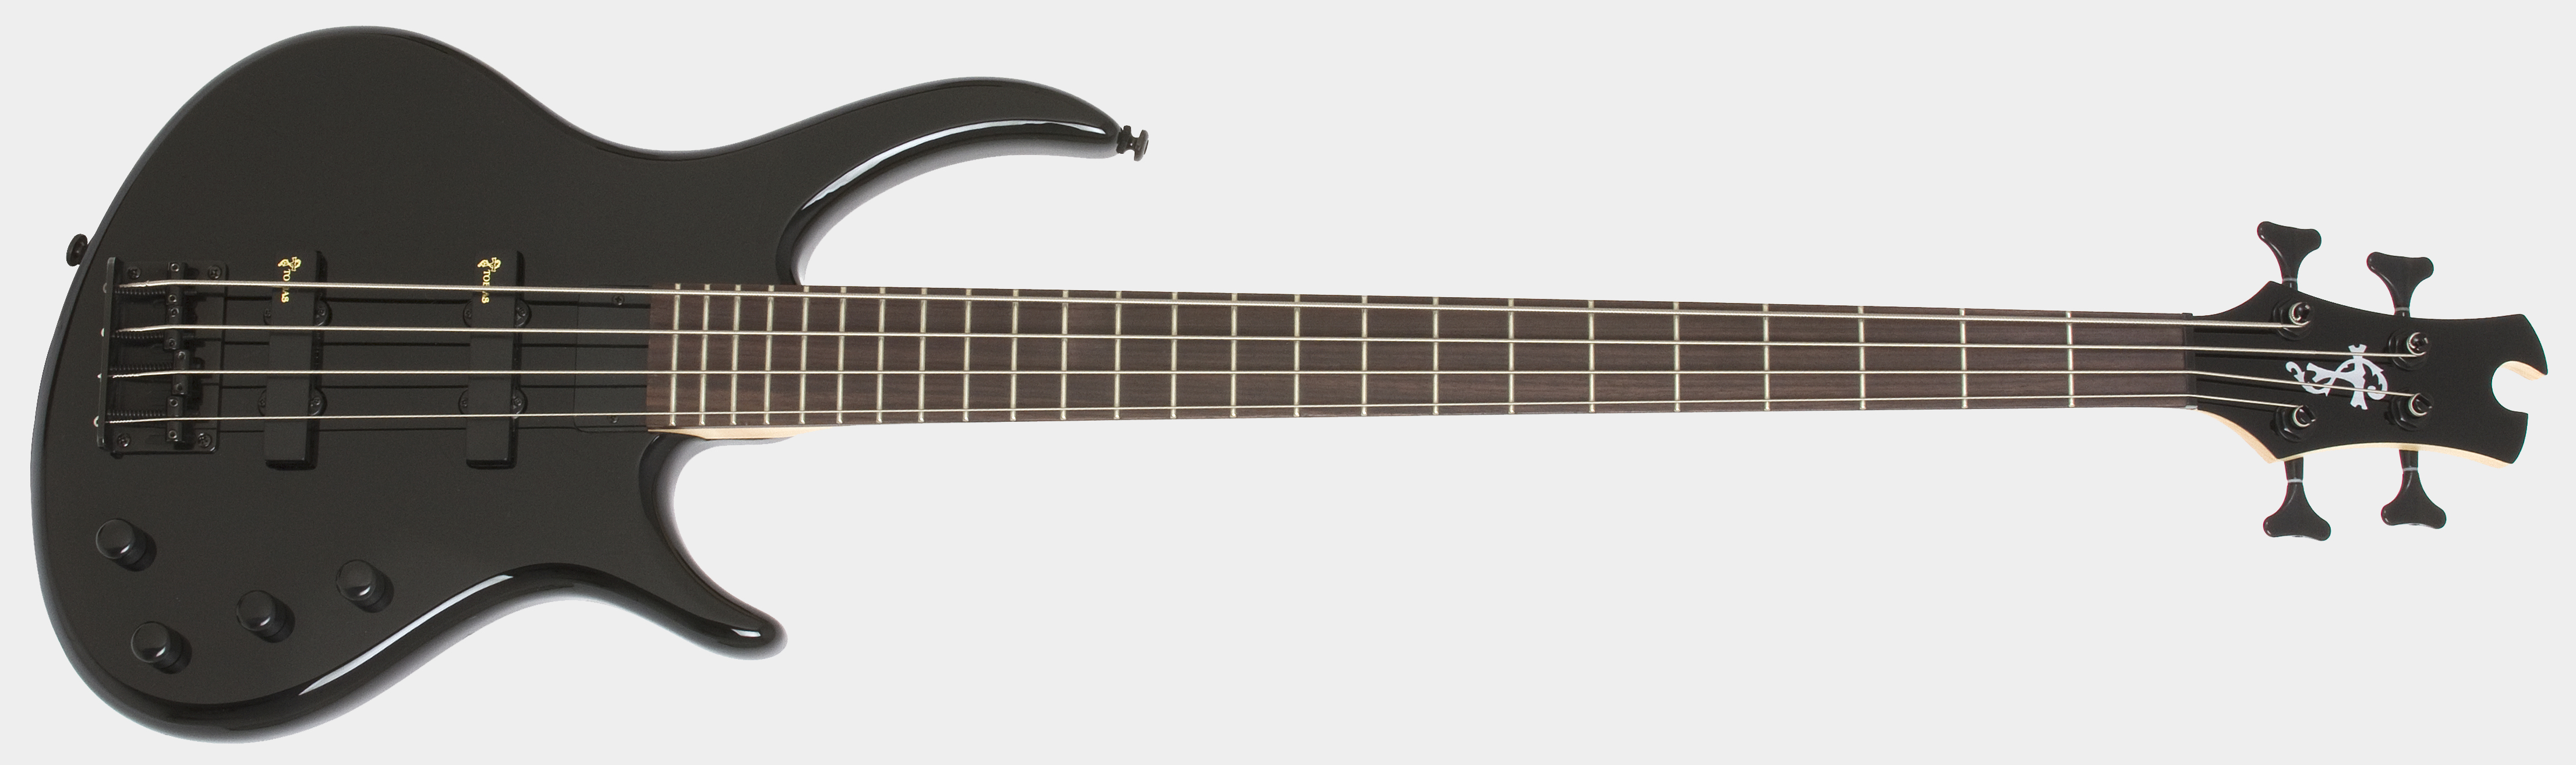 EPIPHONE Toby Bass Performance Pack Bass